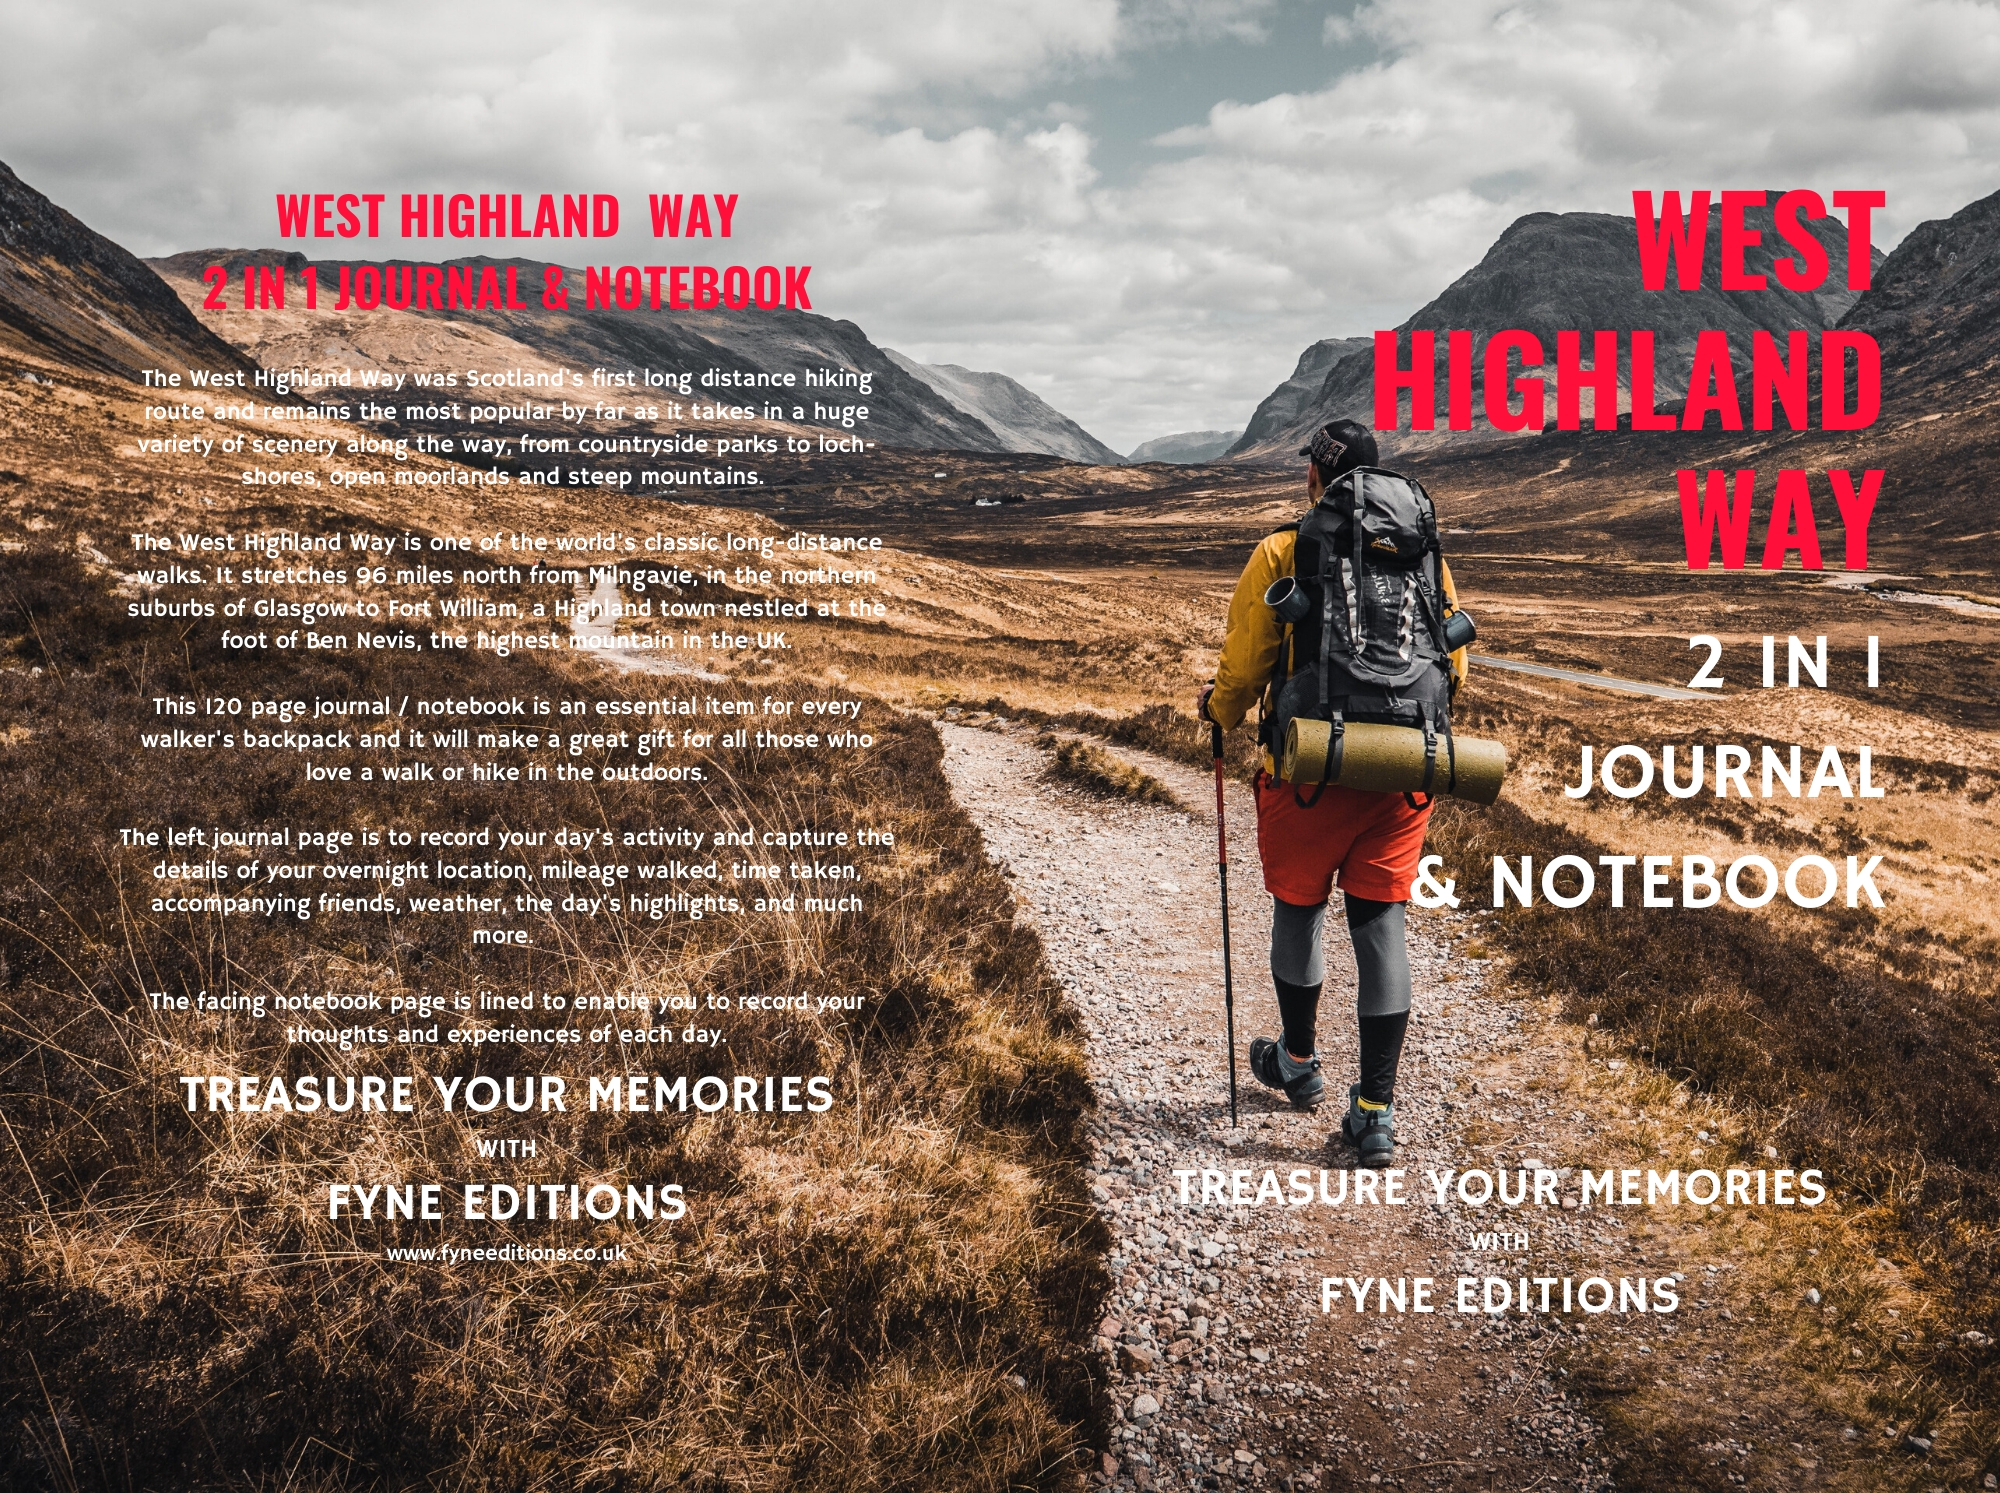 West Highland Way Walking & Hiking Journal